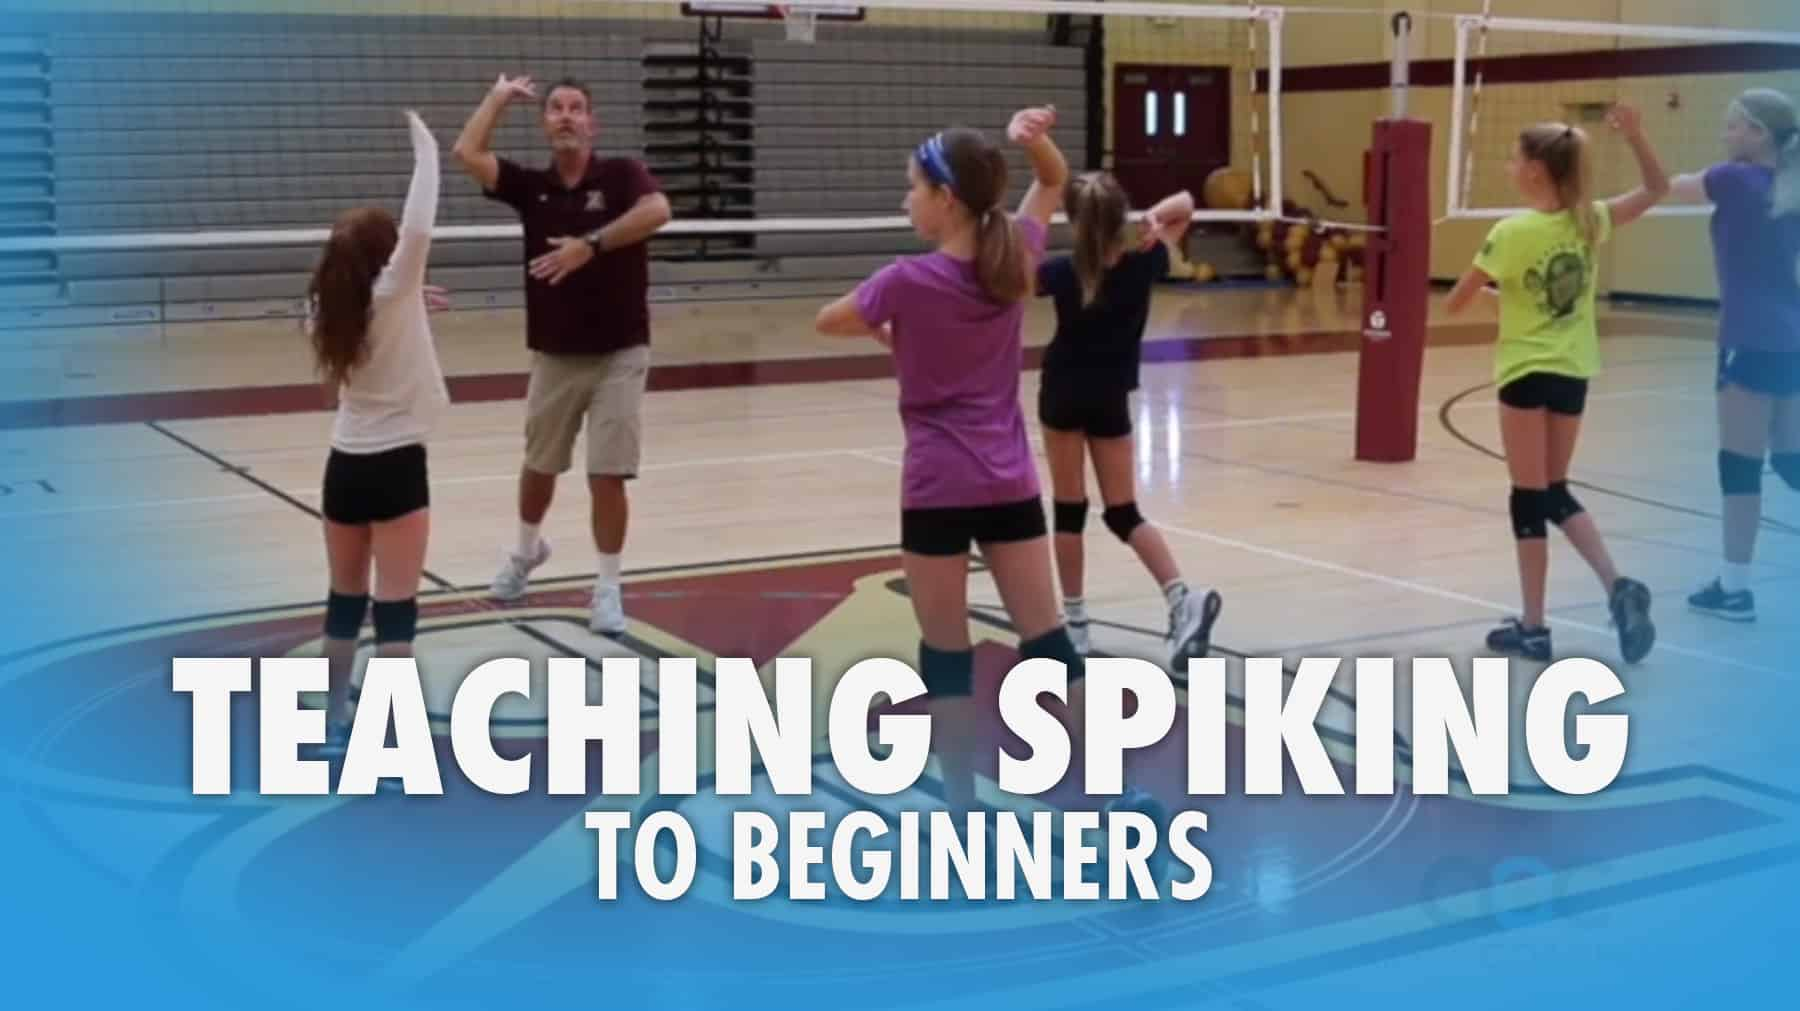 Teaching Spiking To Beginners Intermediates